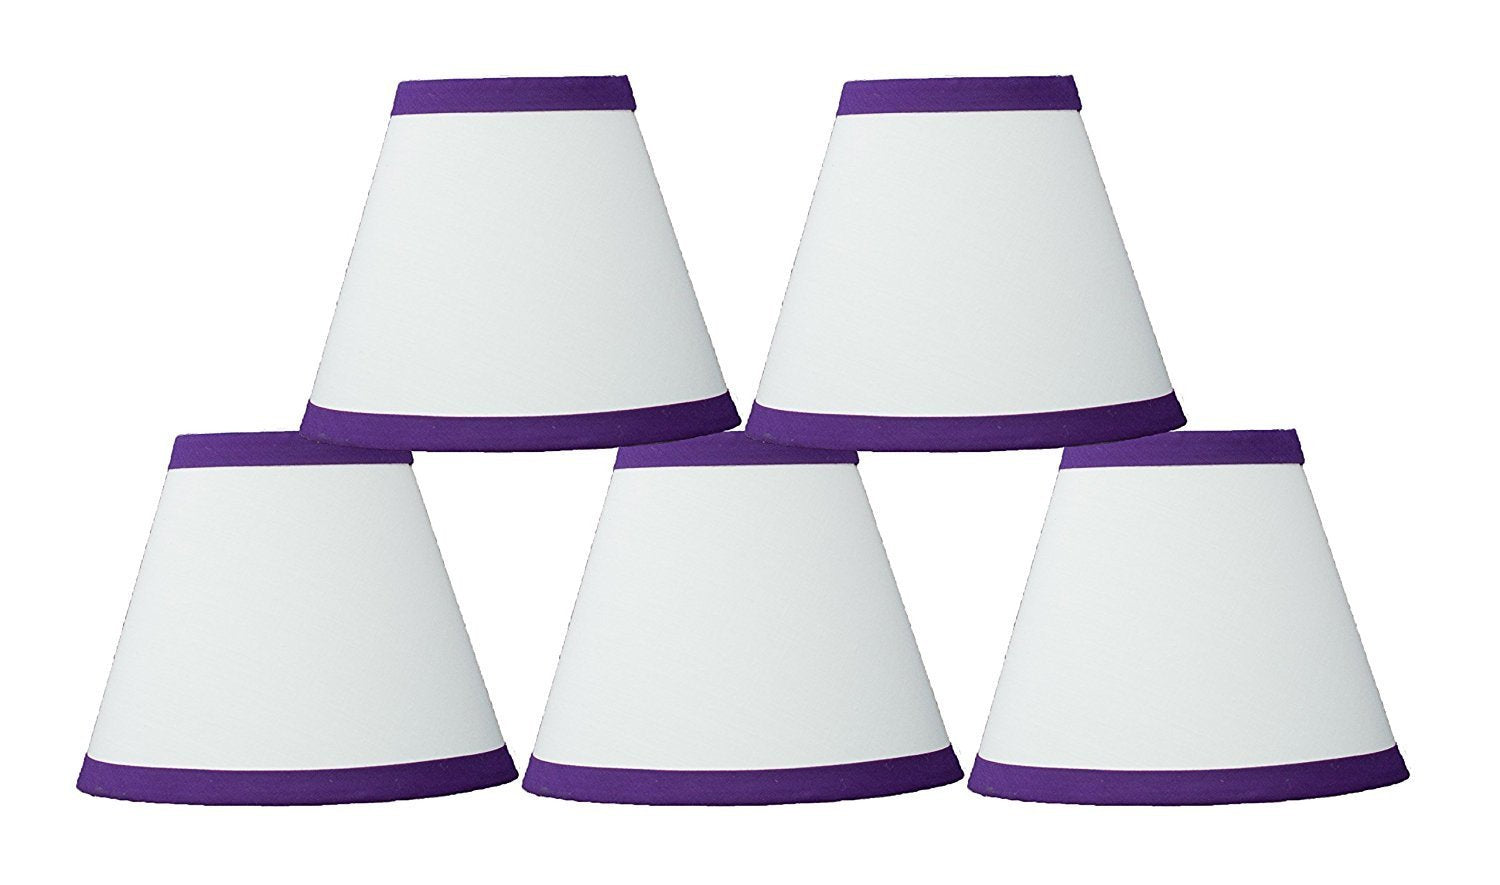 White Cotton 6-inch Chandelier Lamp Shade with Colored Trim - 6 Colors